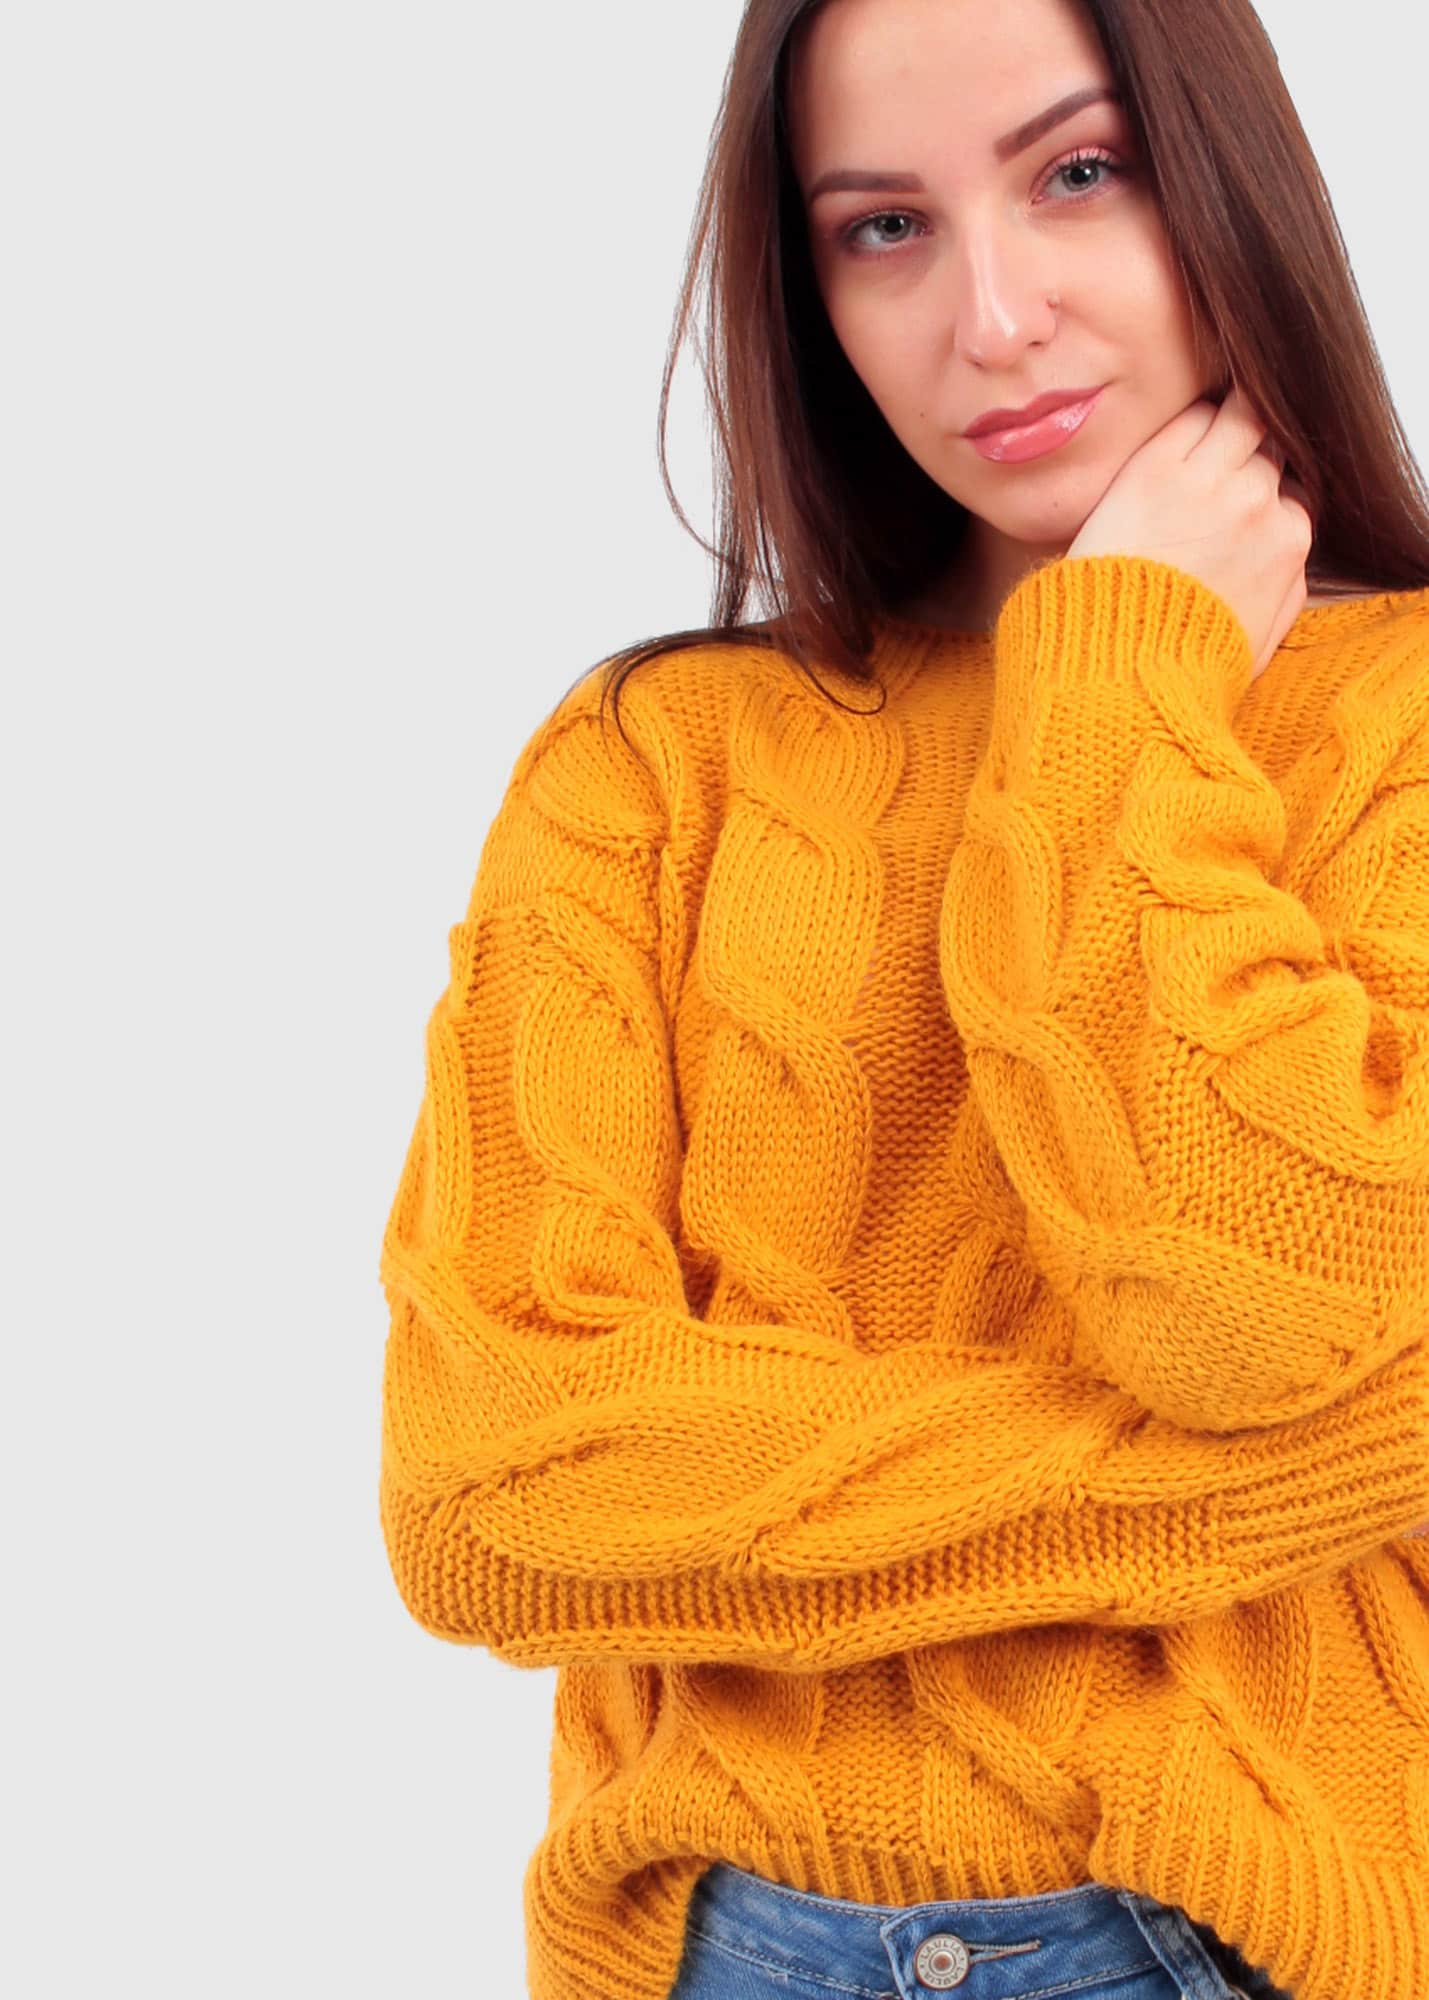 Apollonia Giallo sweater